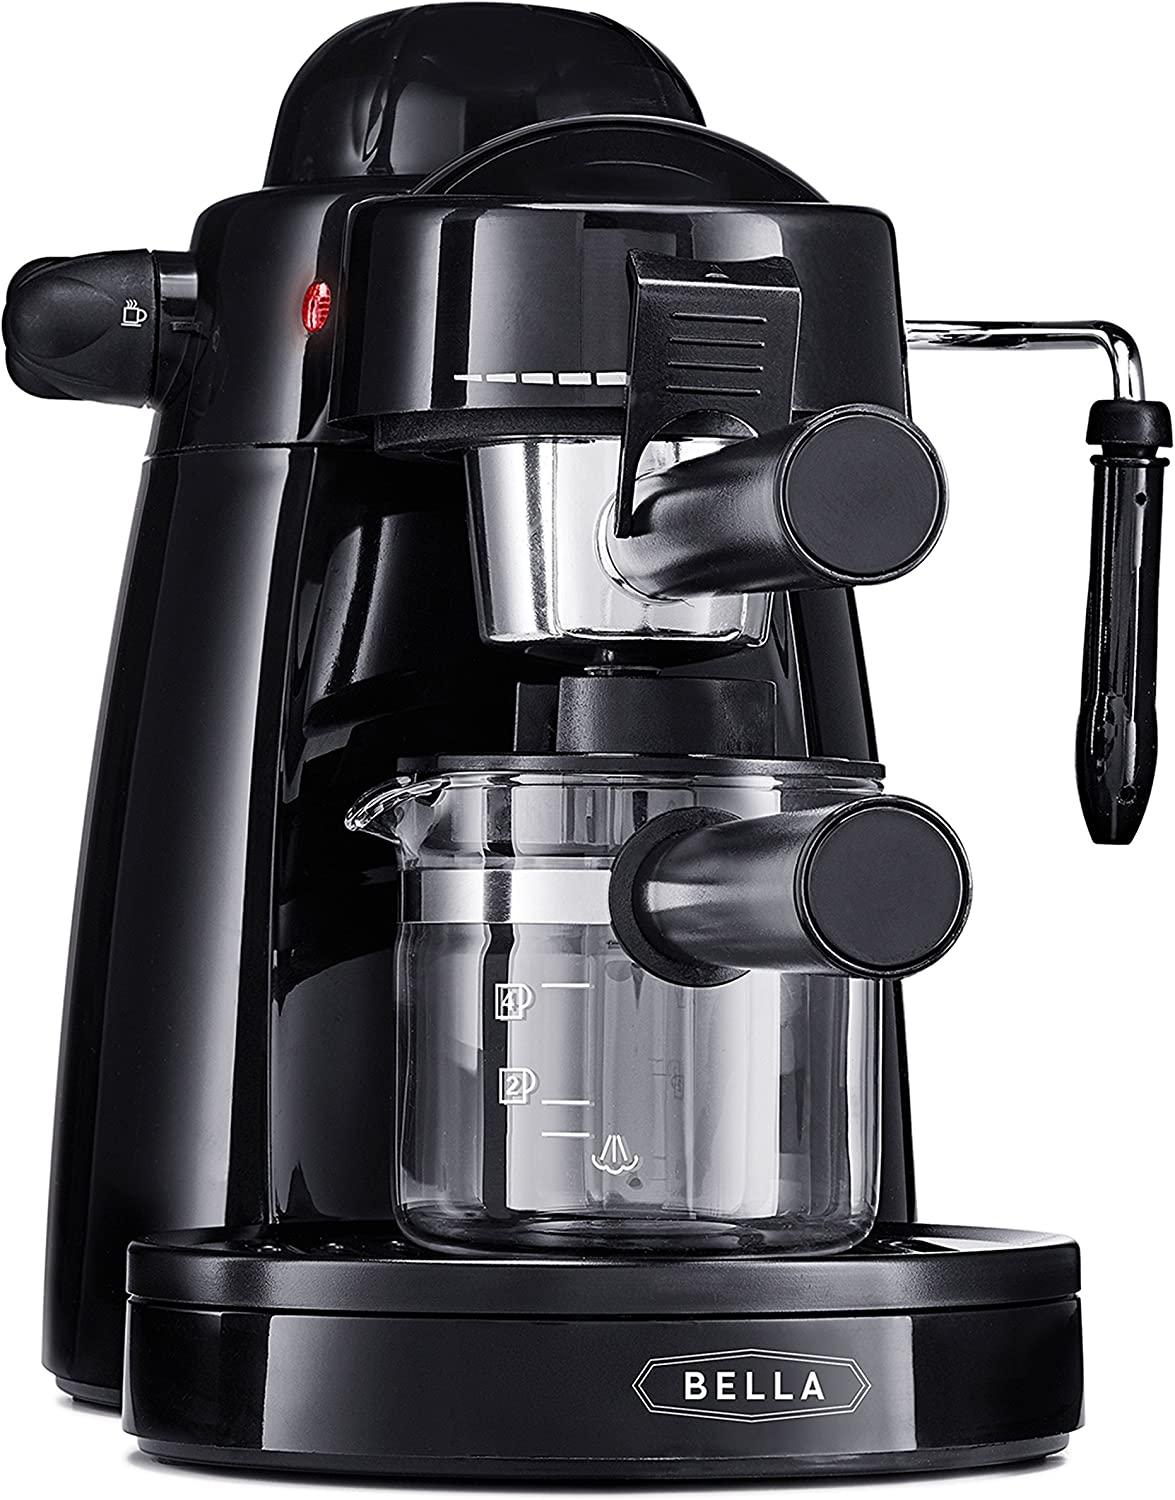 BELLA (13683) Personal Espresso Maker with Built-in Steam Wand, Glass Decanter, Permanent Filter & 5 Bar Pressure, Black